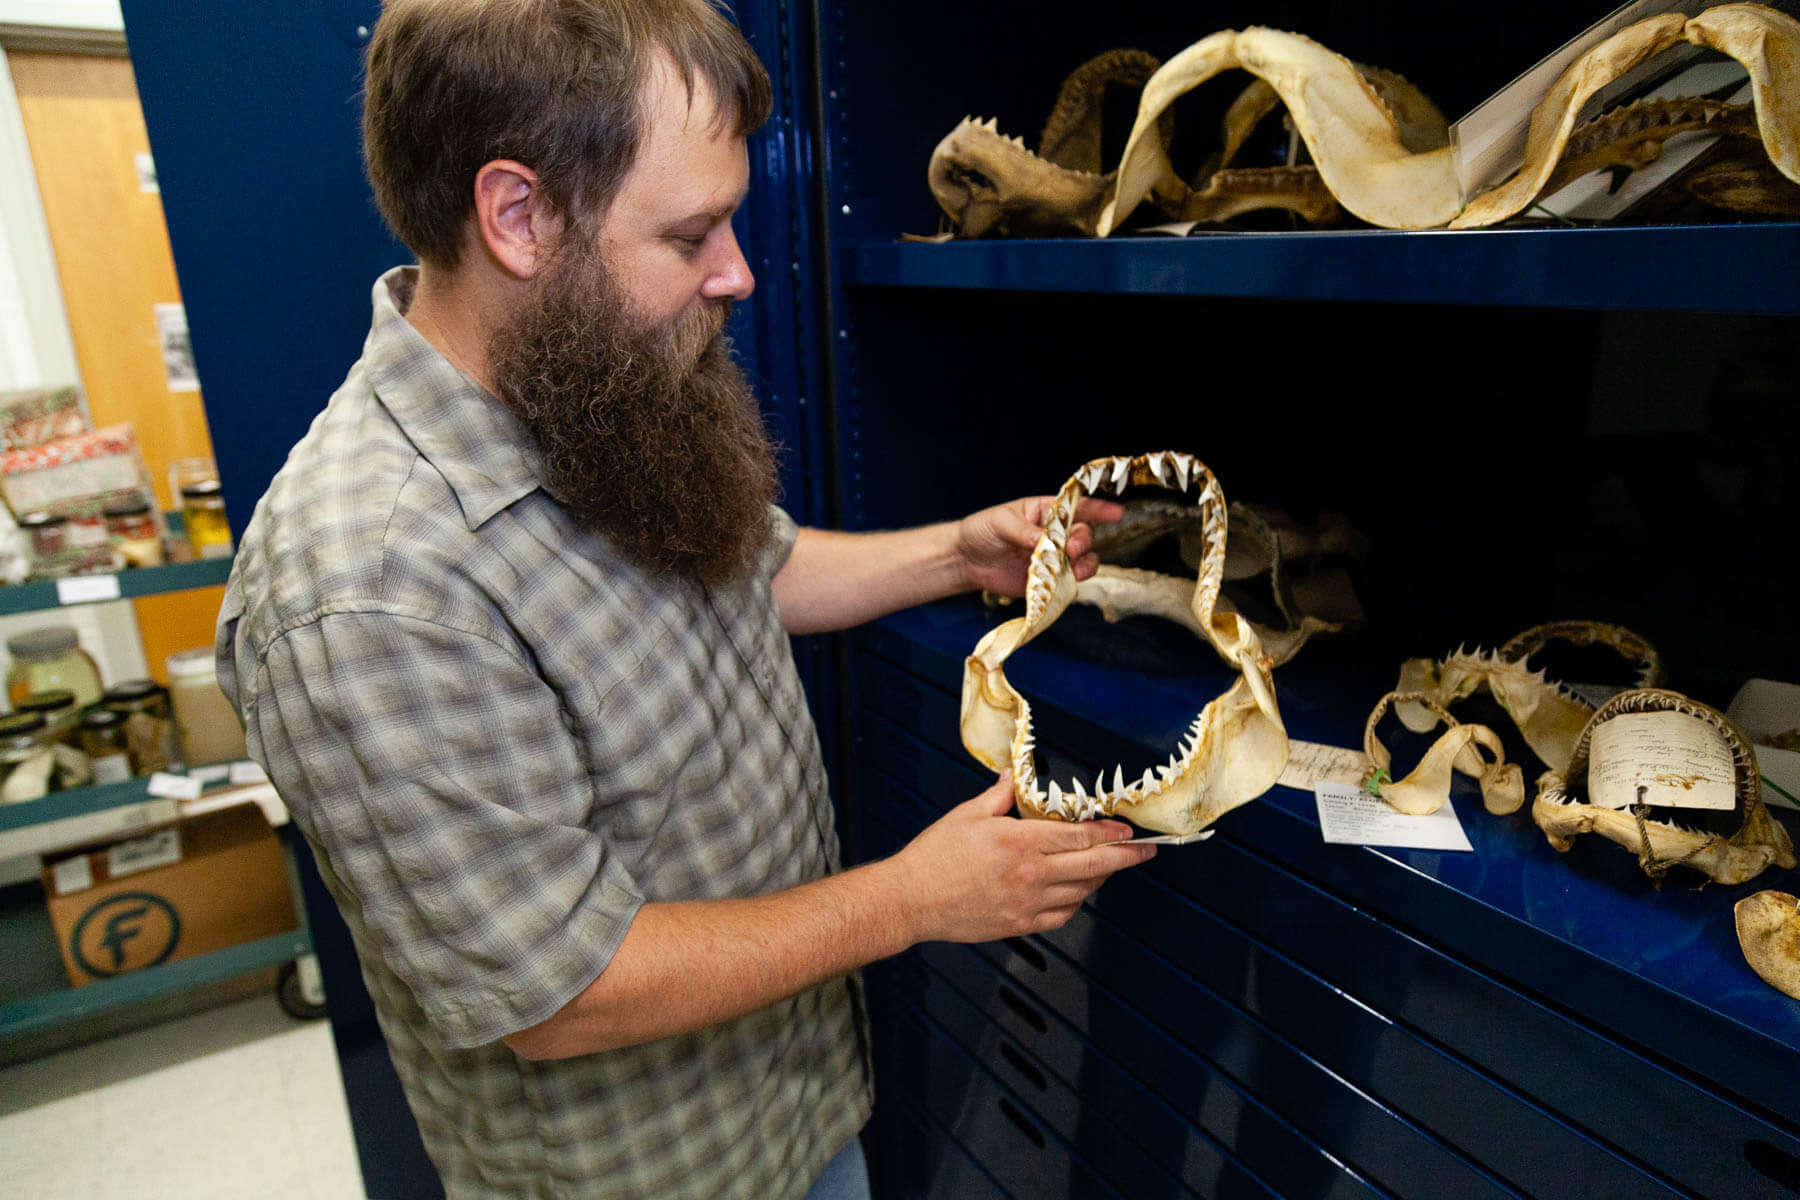 A man holds shark jawbones with several more resting on a table